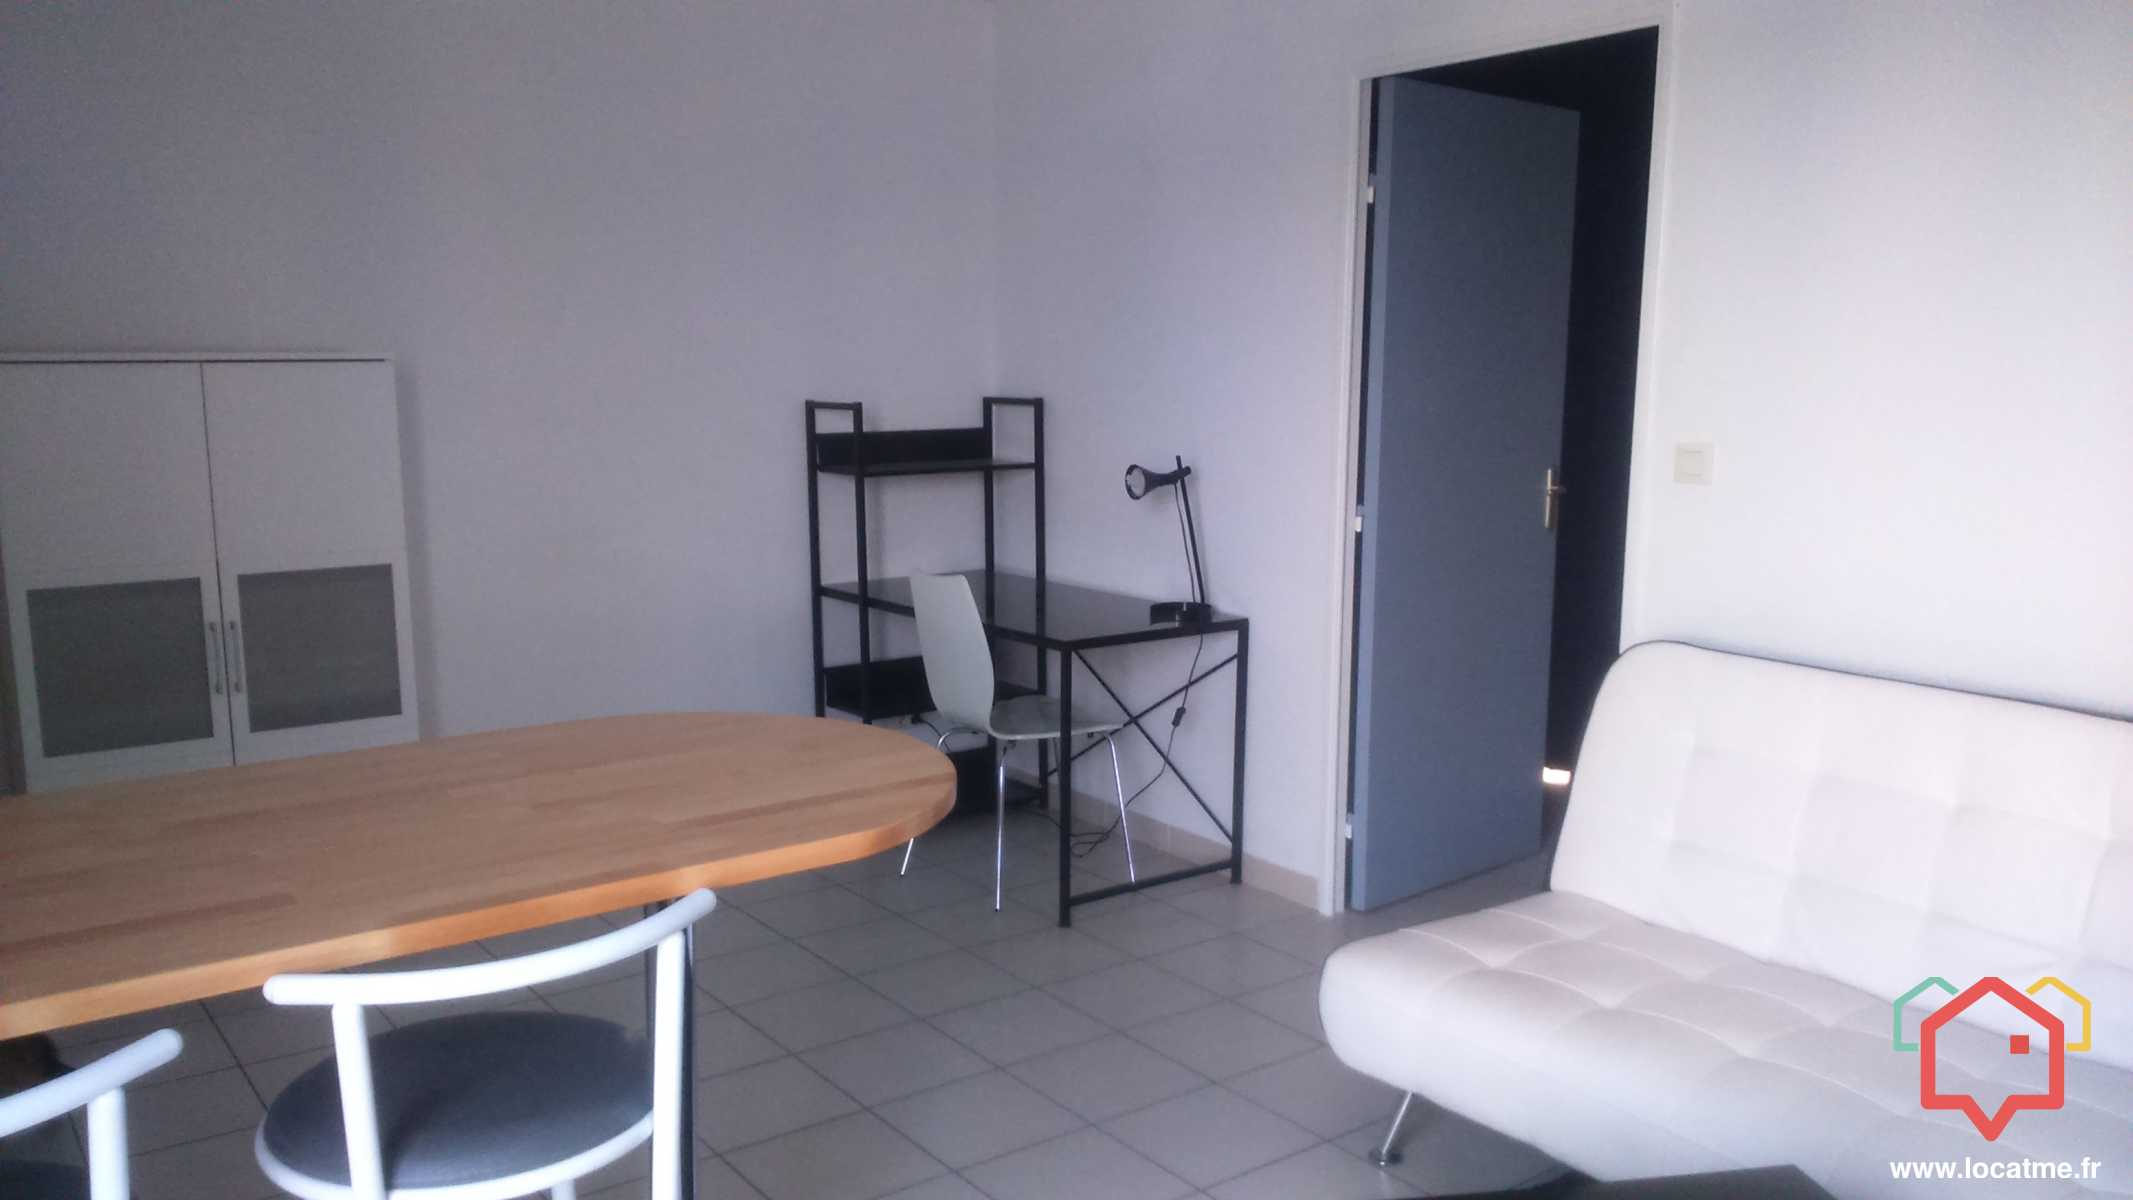 Location appartement meubl montpellier particulier for Appartement meuble montpellier